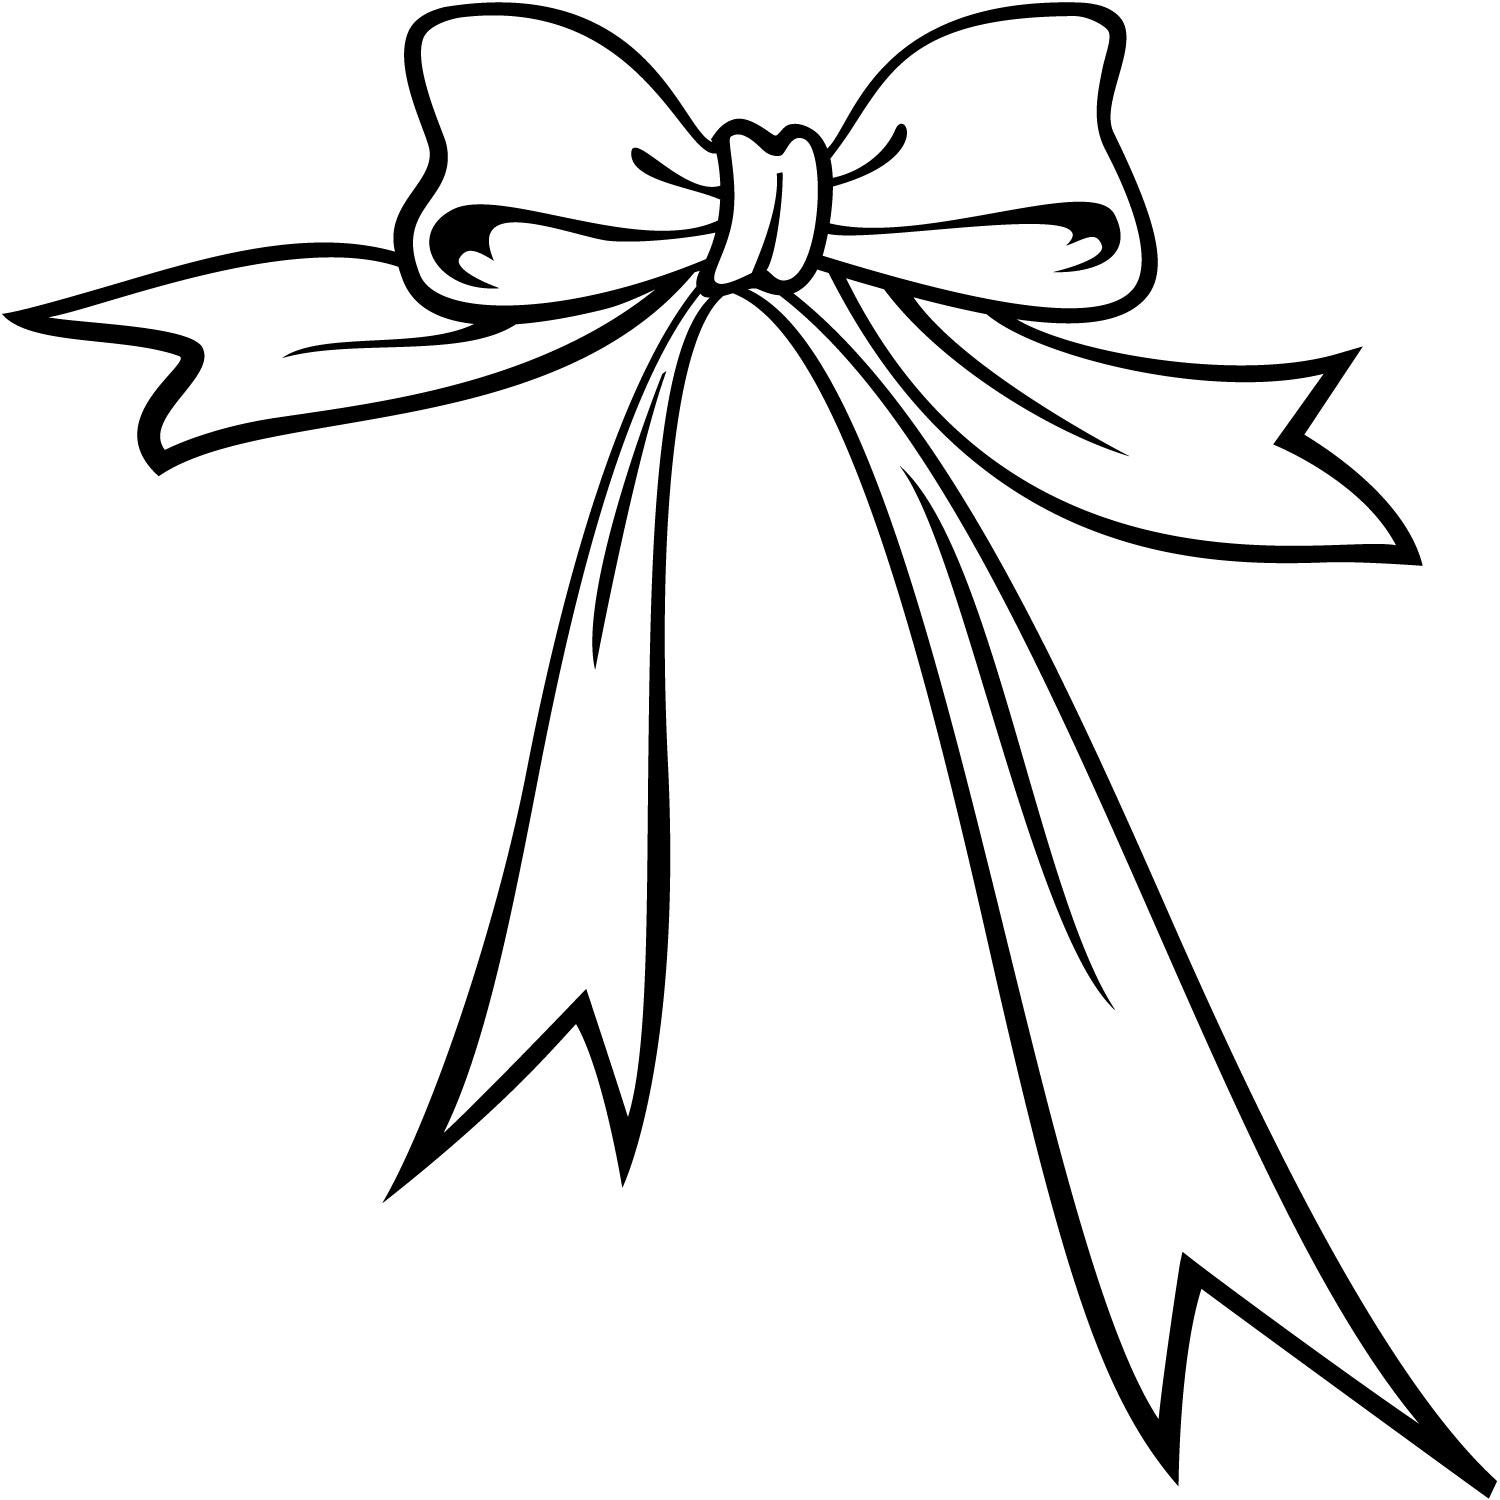 clip art vector ribbon - photo #43